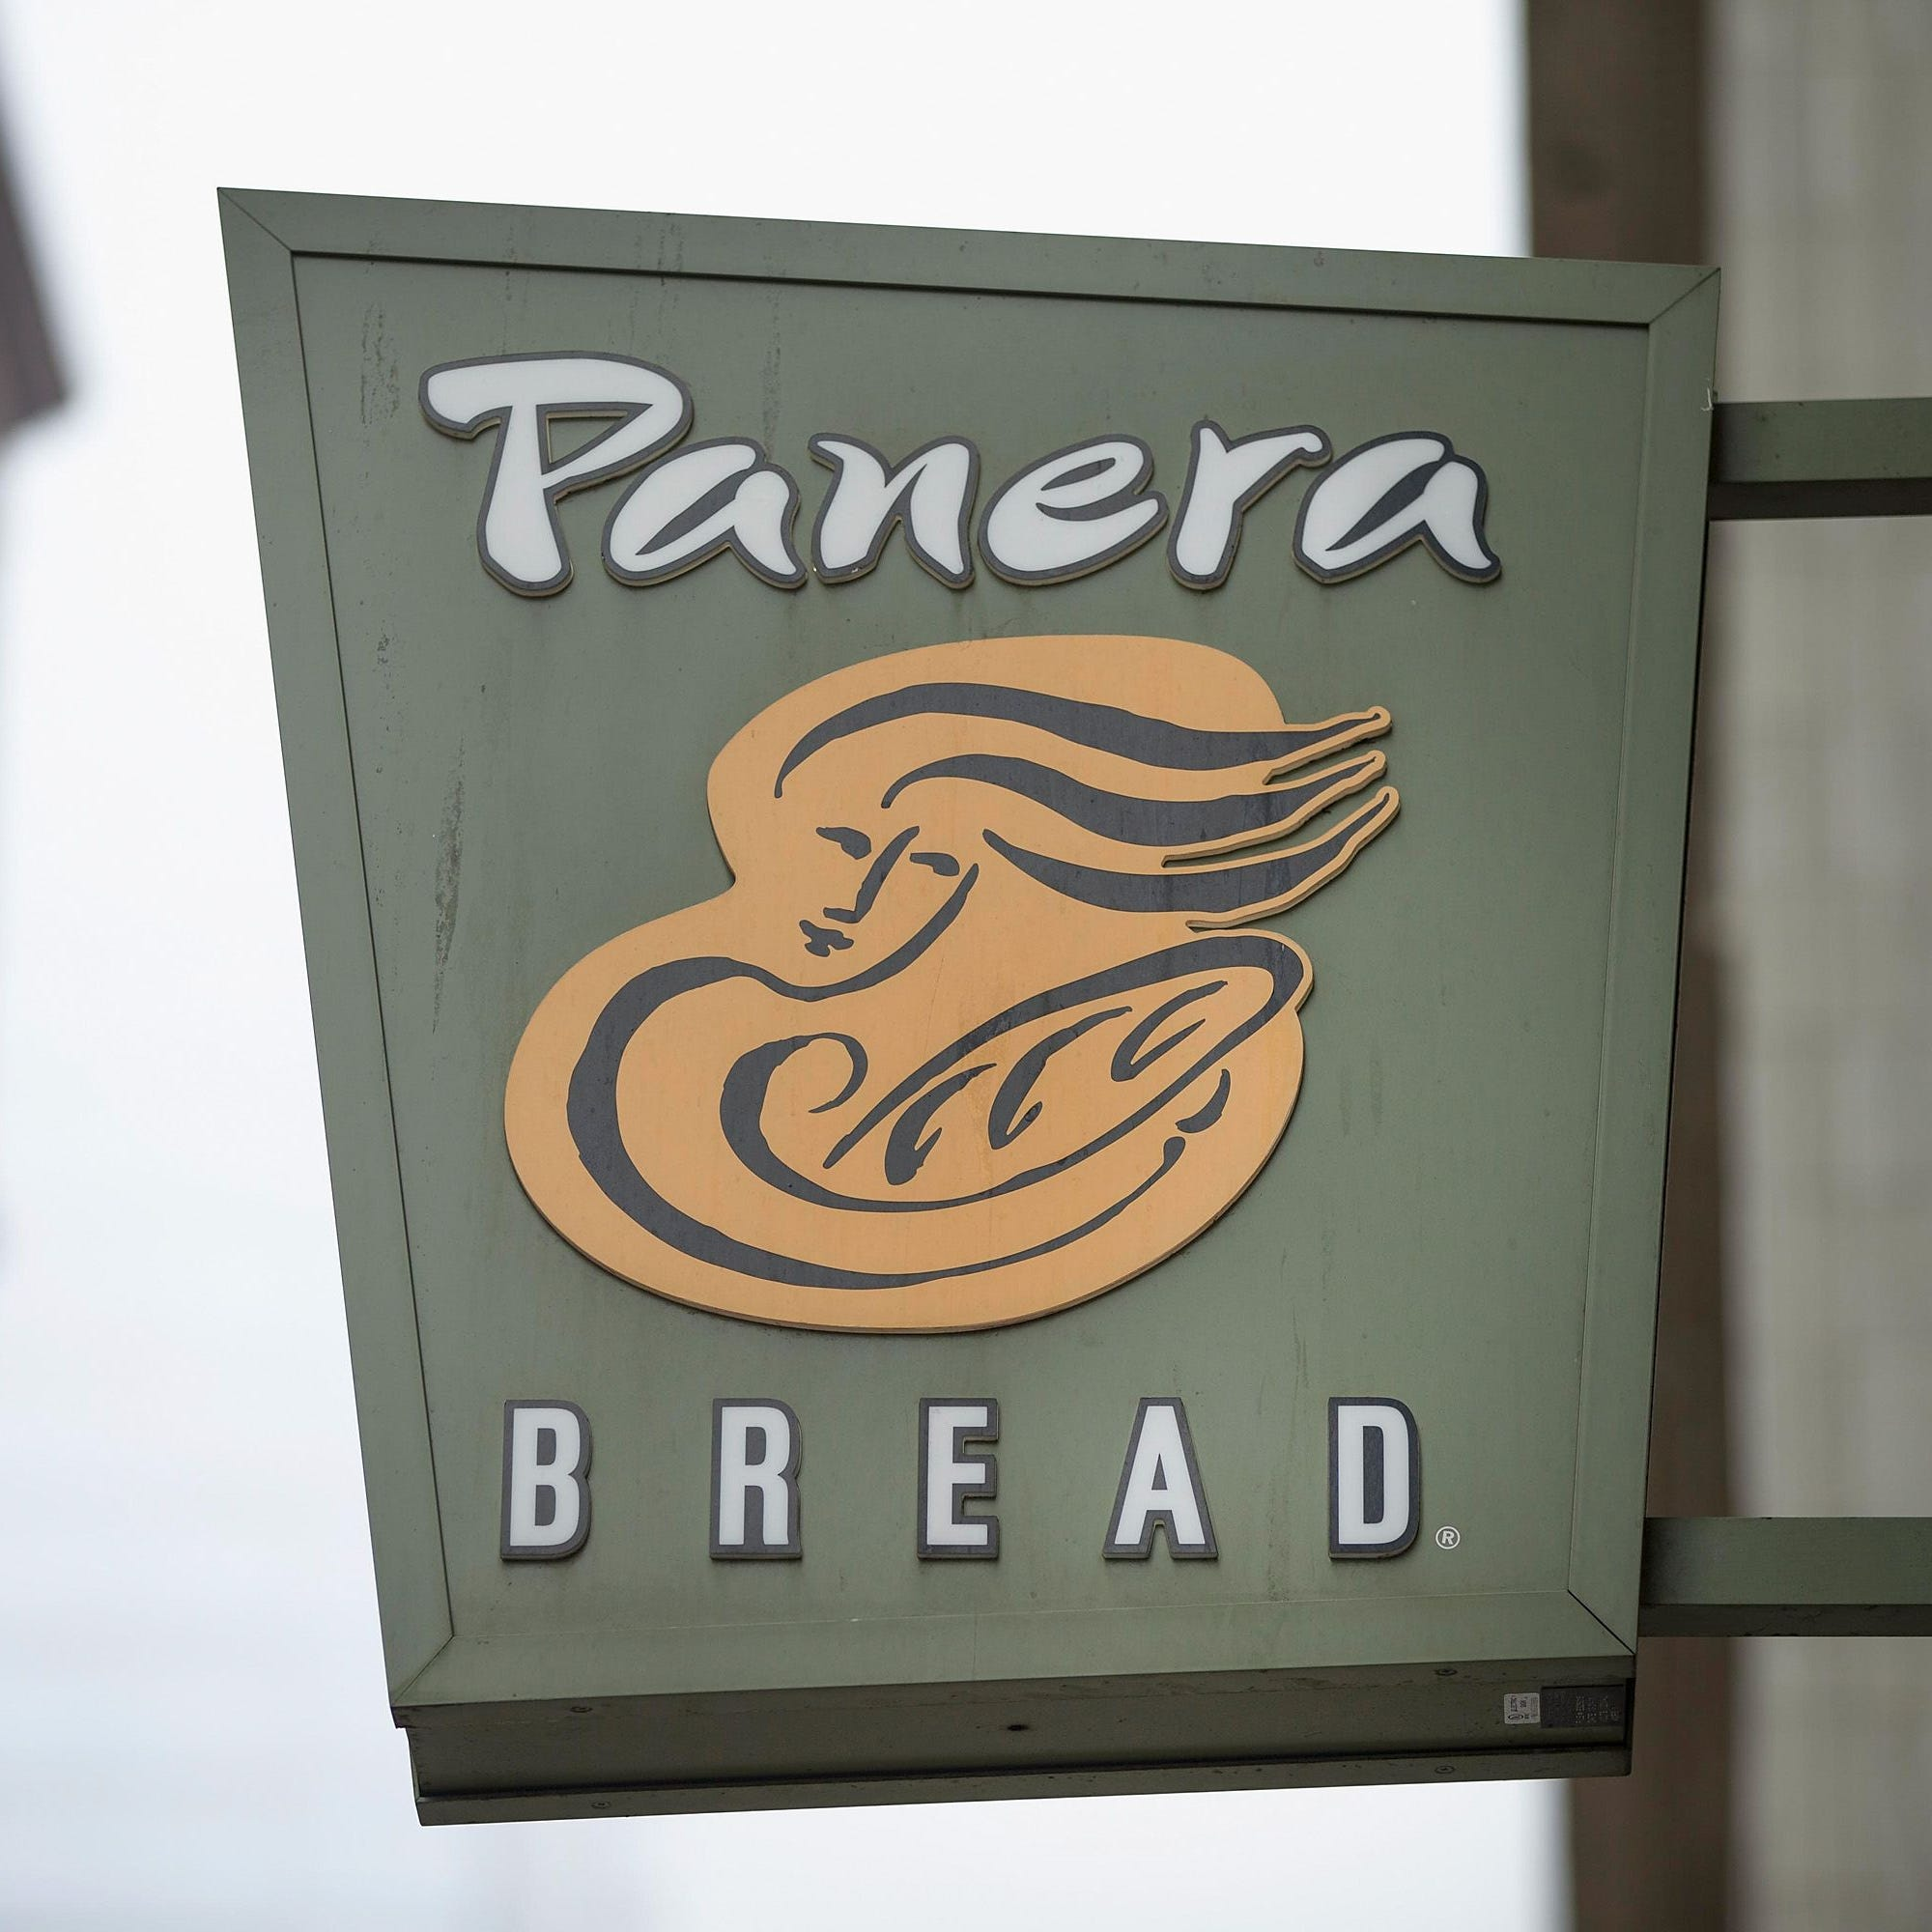 Panera Bread is coming to Reno's Damonte Ranch too, permit shows